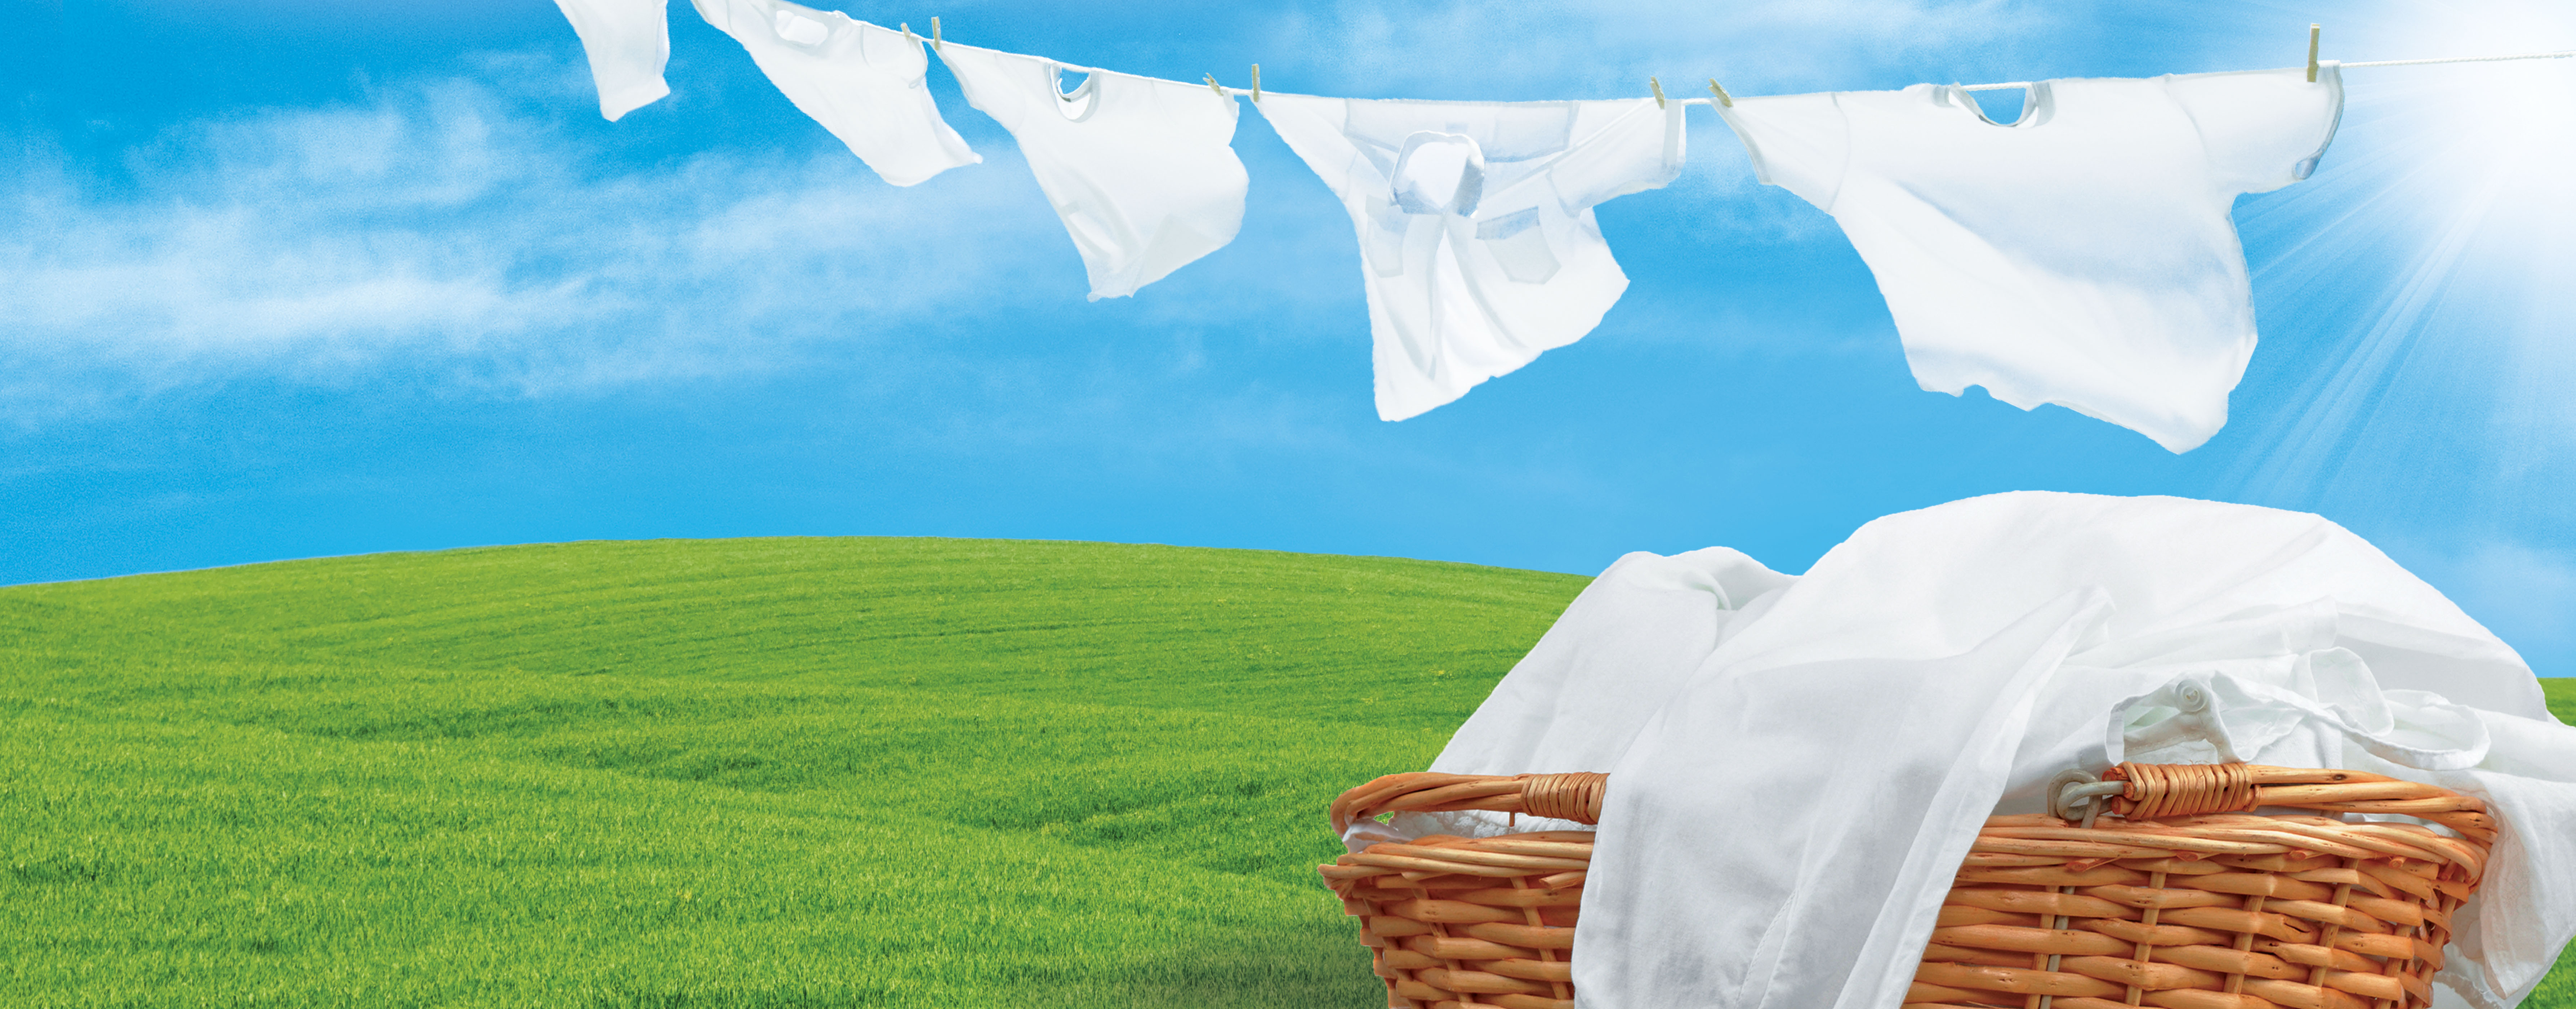 fresh laundry hanging on the line